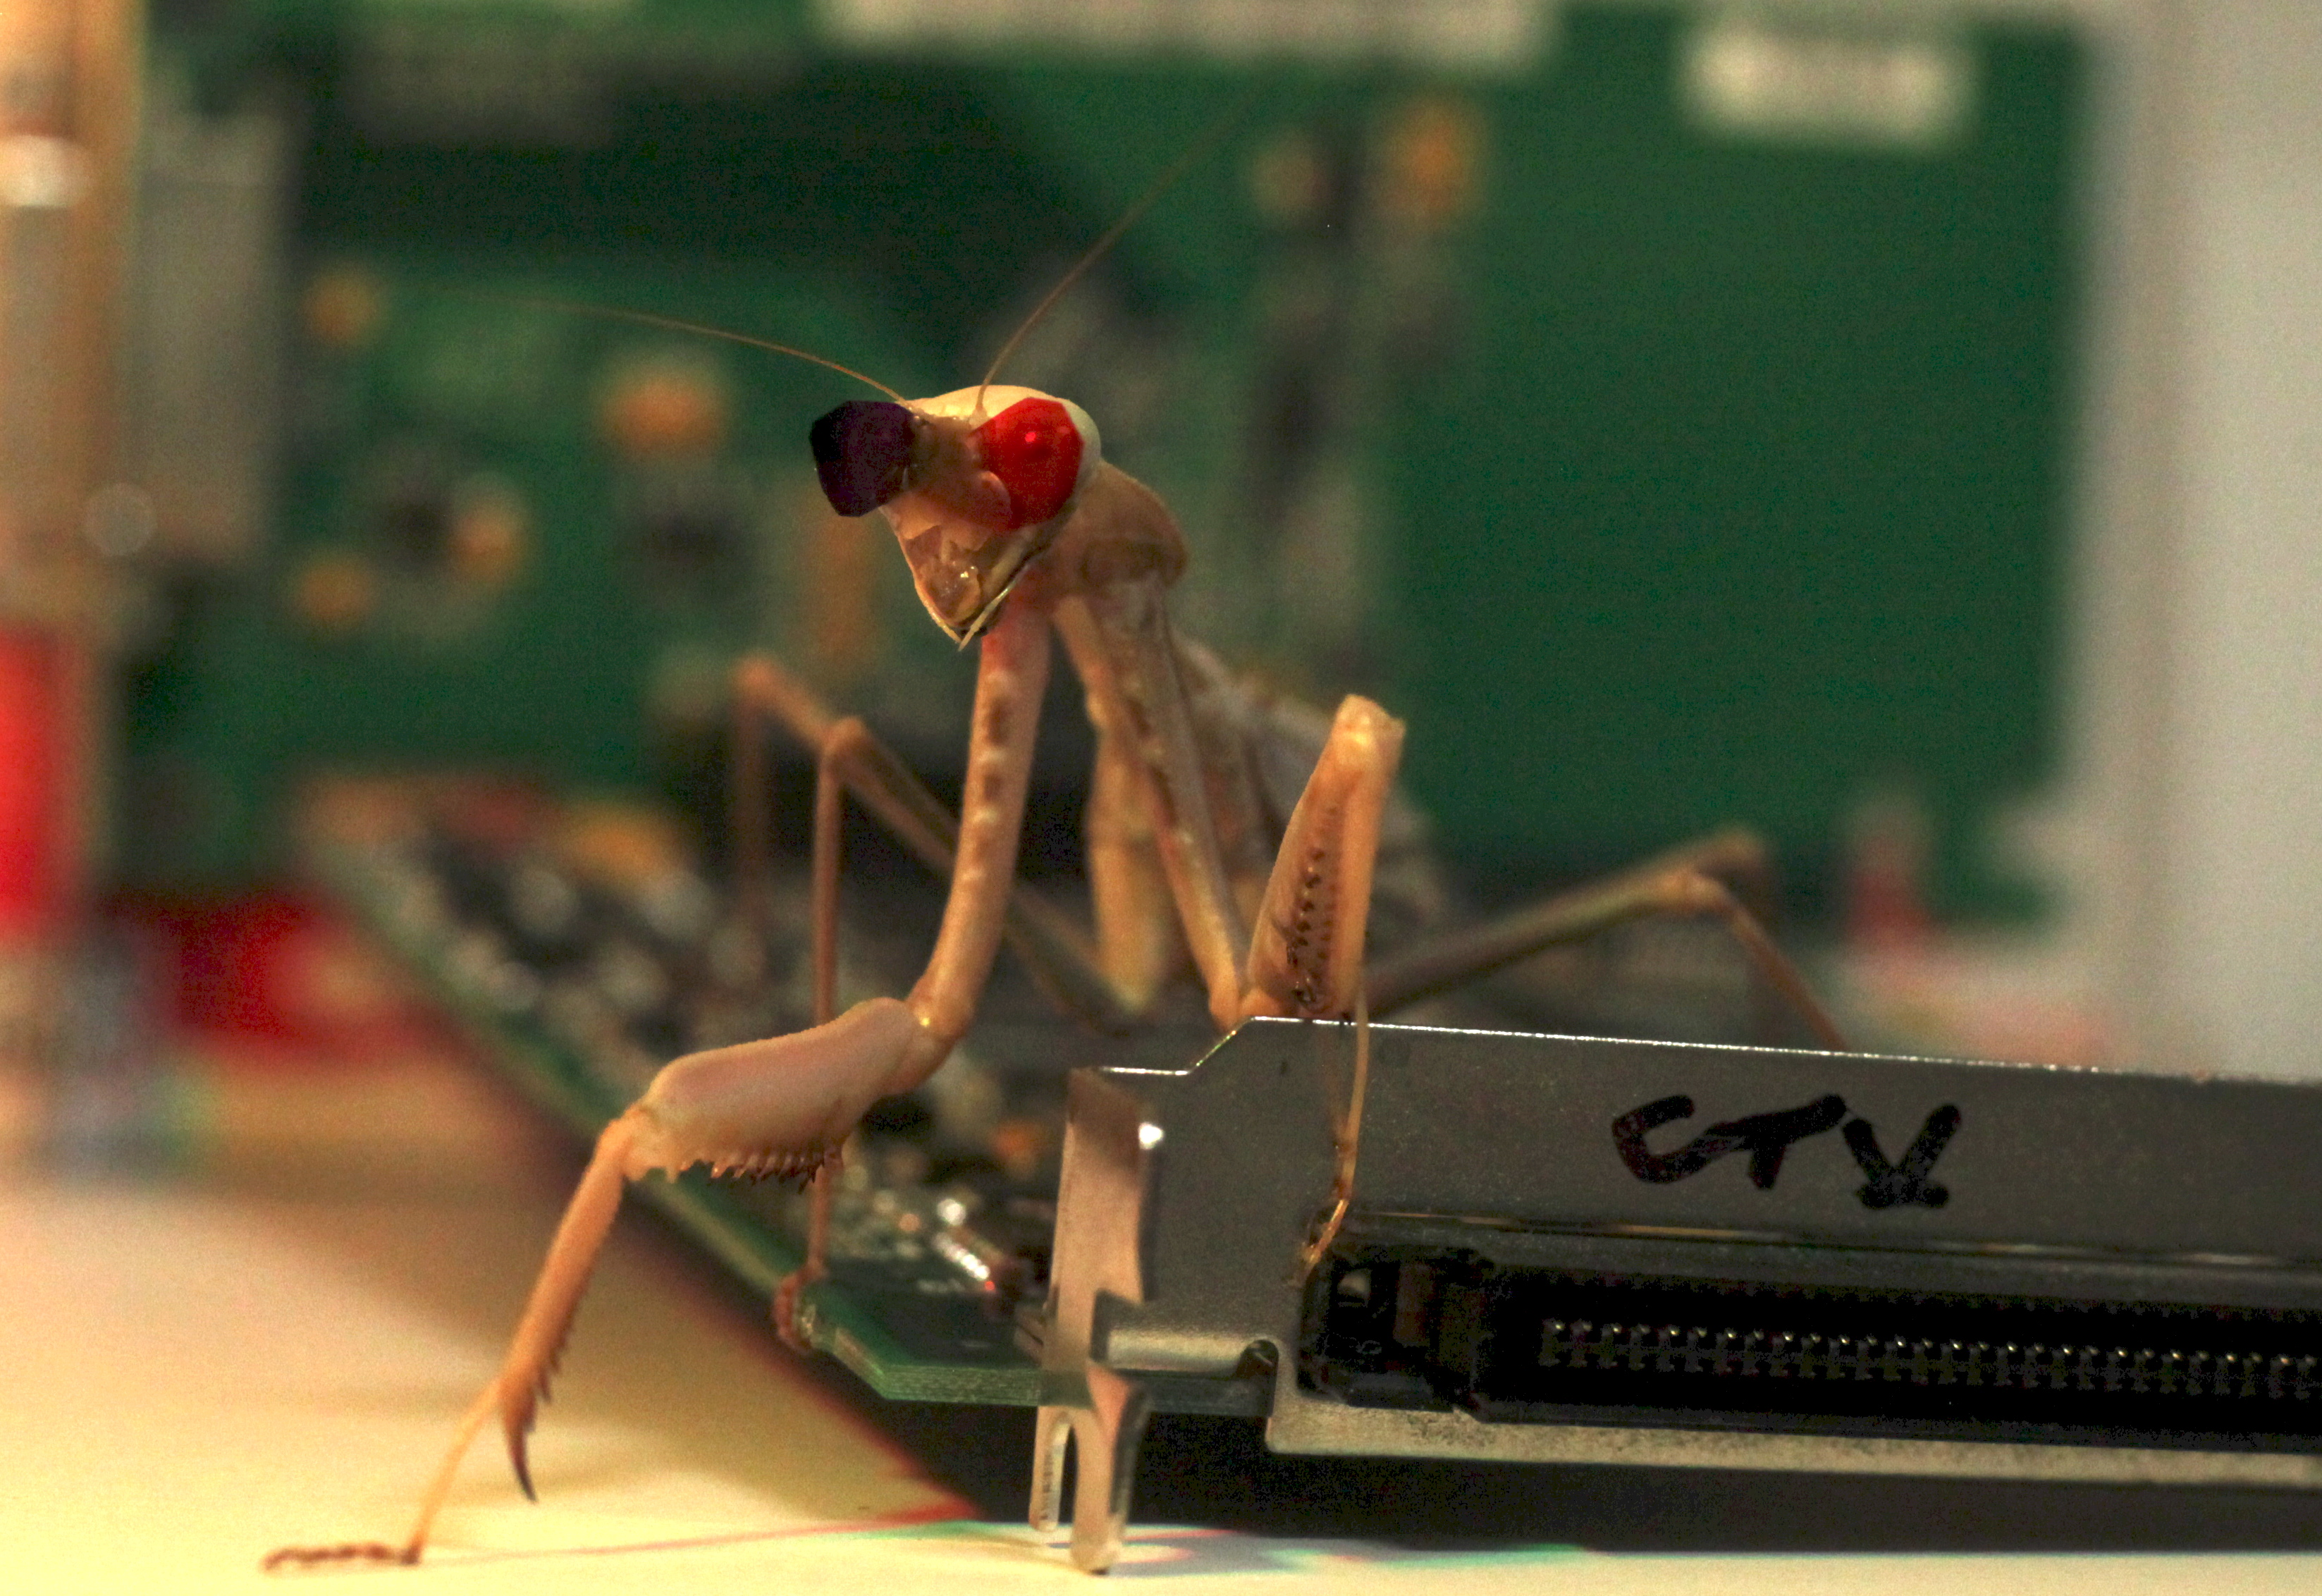 Praying mantis on circuit board wearing coloured